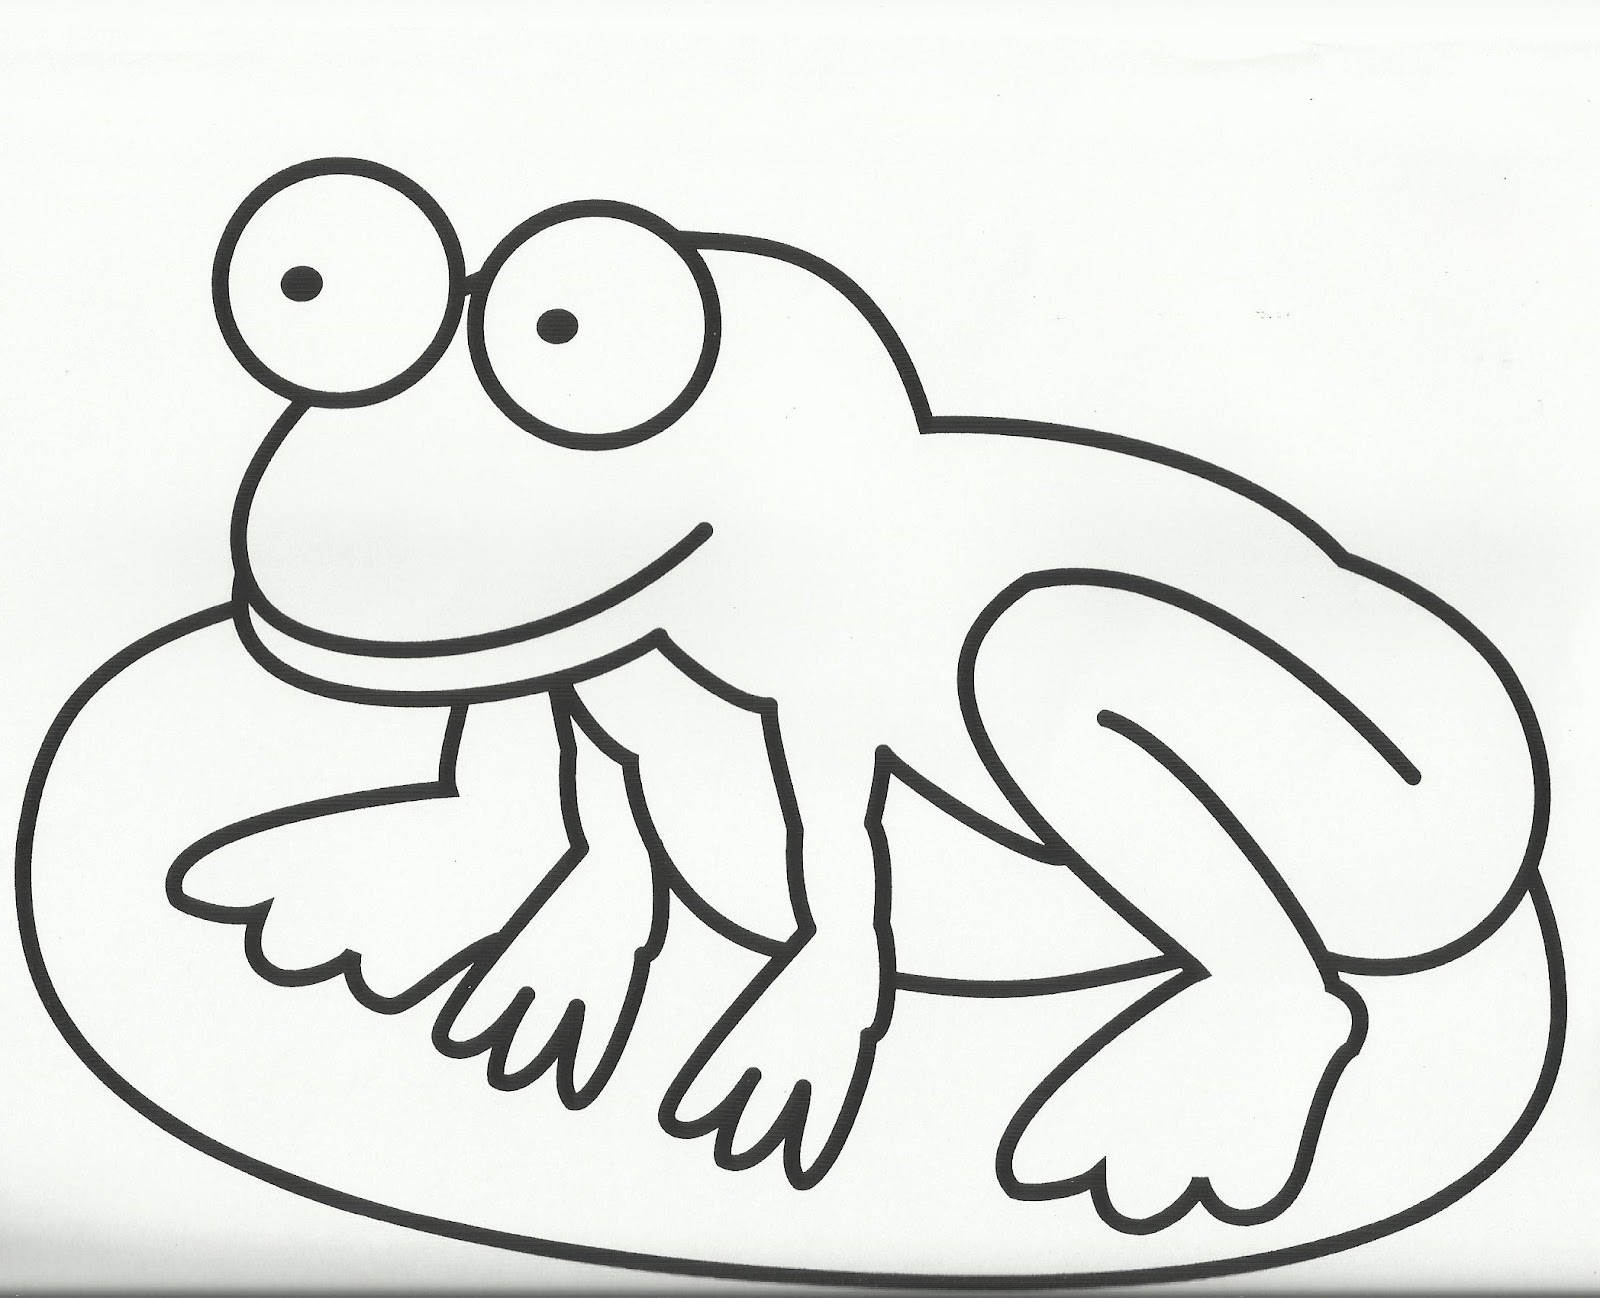 great fun frog to colour in - Colour In Stencils